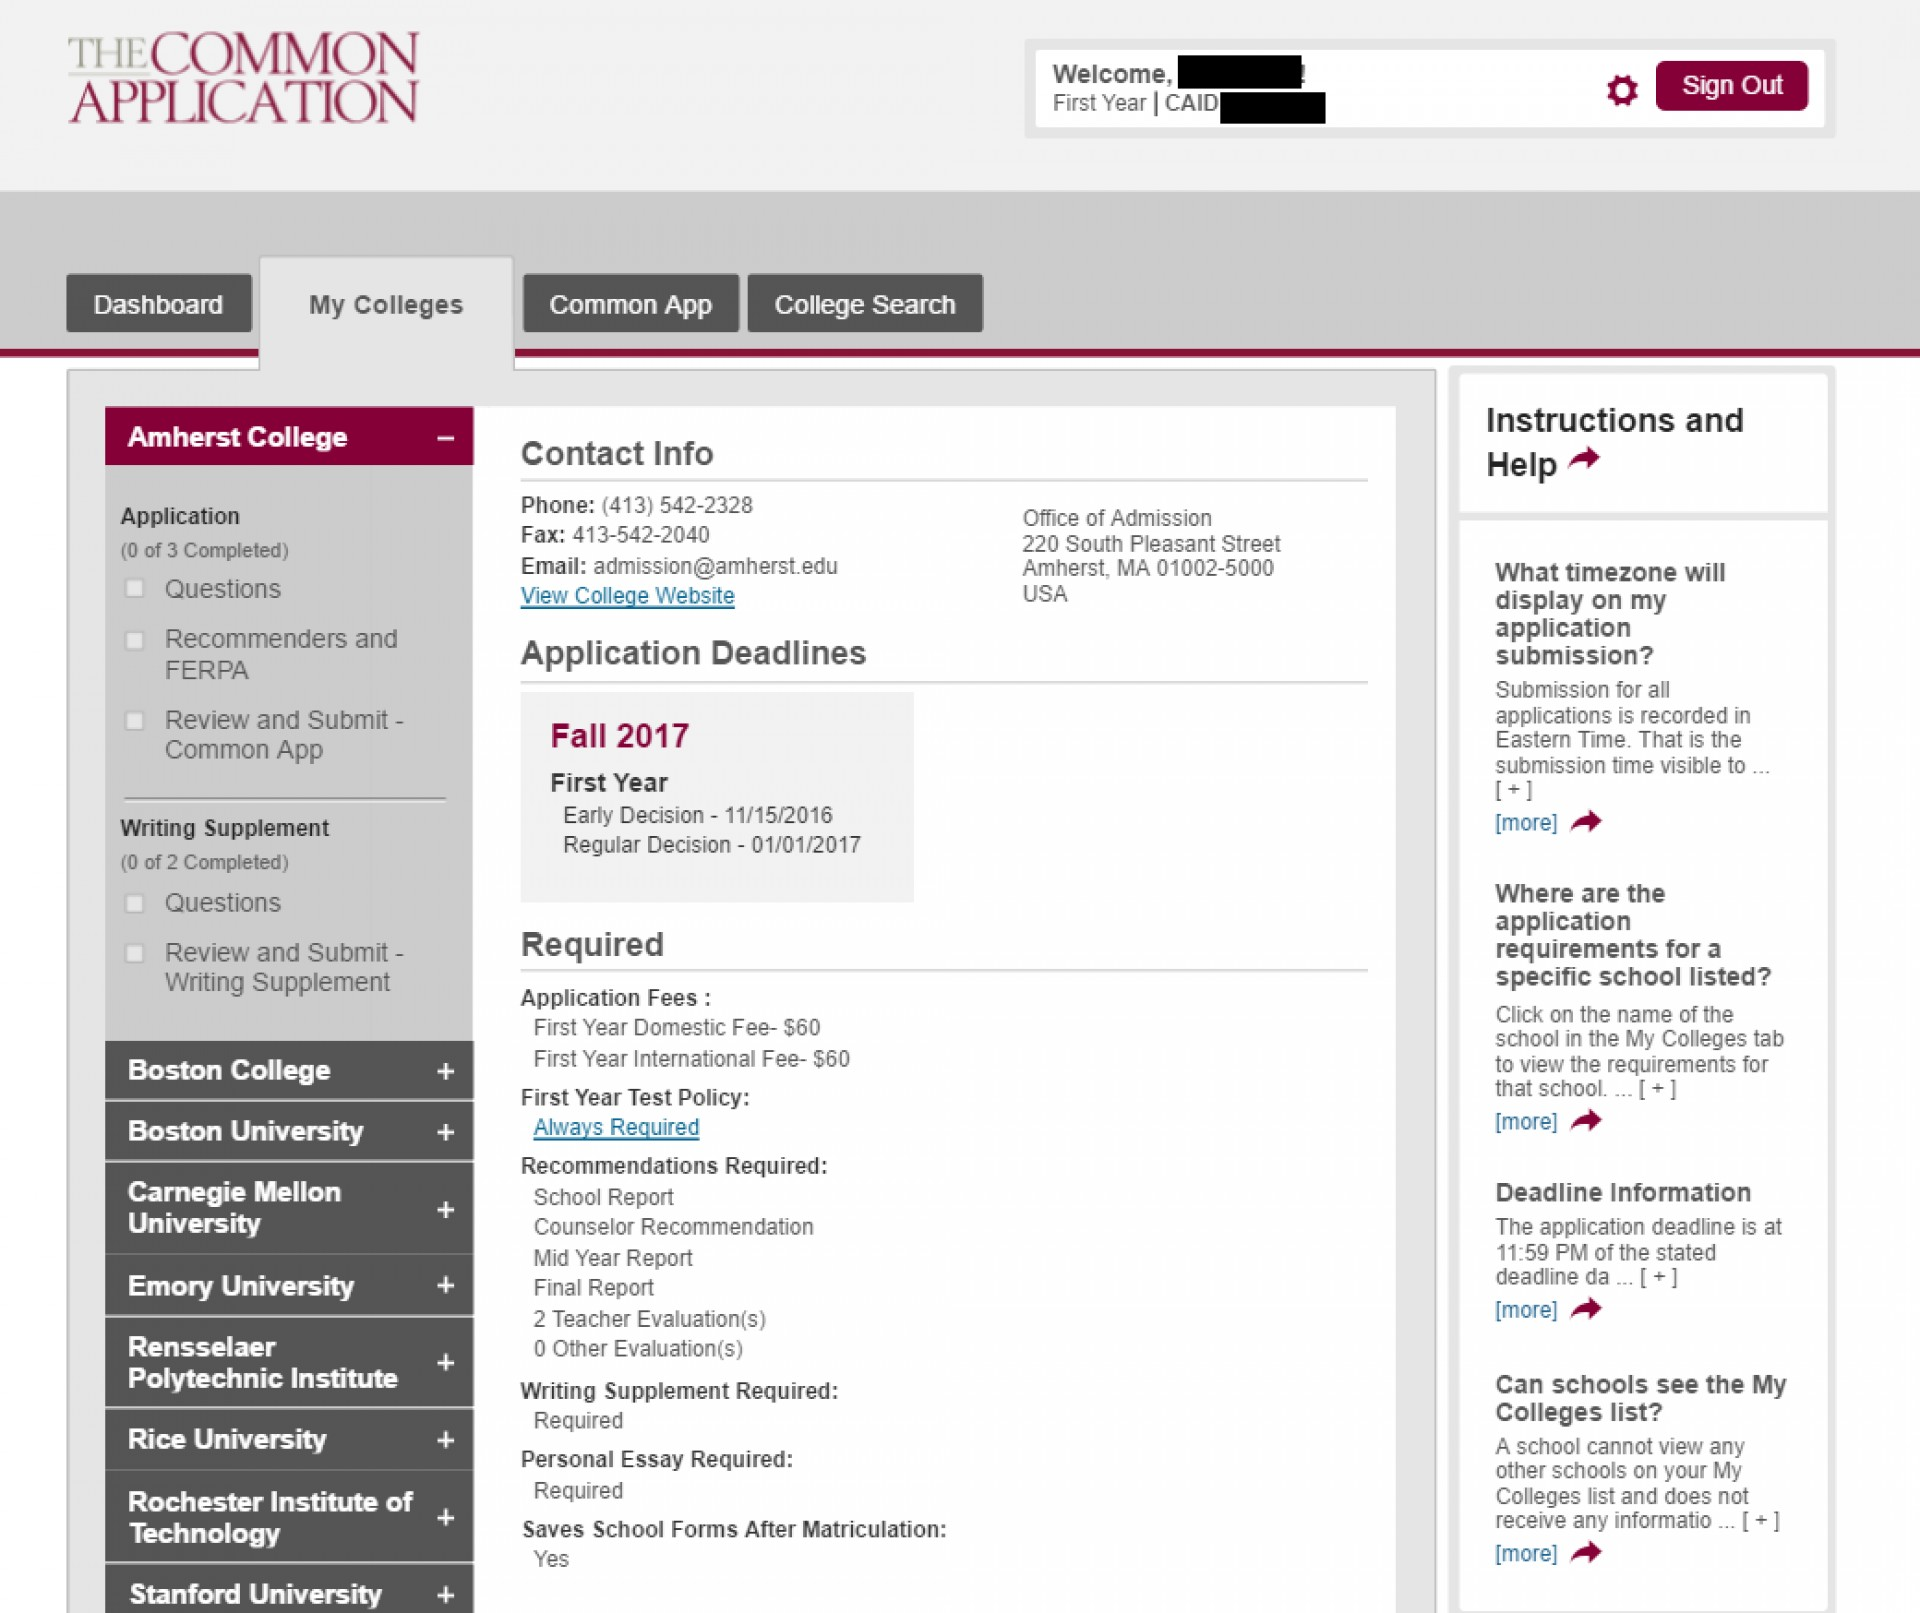 020 Common App Examples My Colleges Best Example Essays Essay Samples Option 1 Prompt 2016 2017 1920